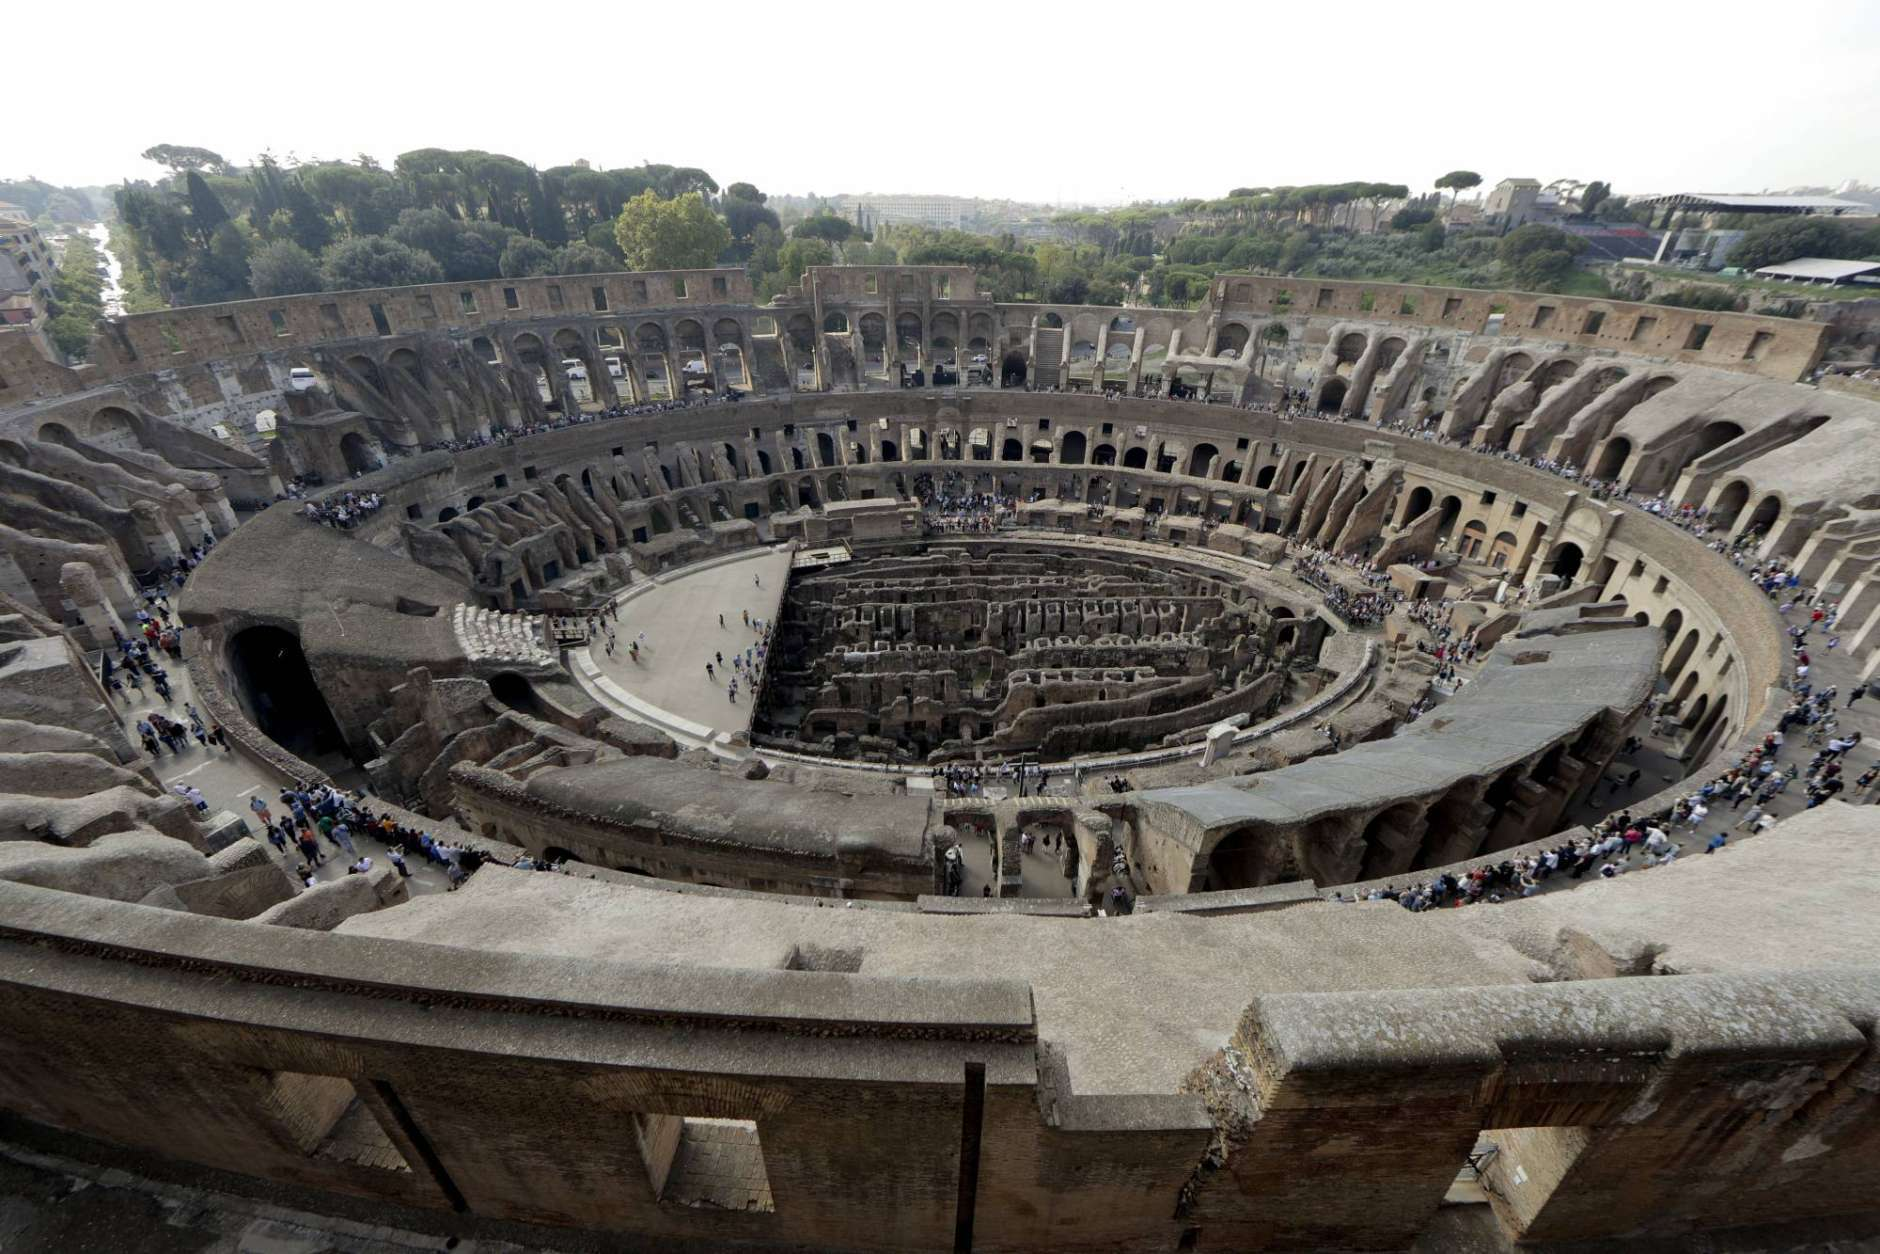 A view of the ancient Colosseum as seen from the topmost level, on the occasion of a media tour presenting the re-opening after forty years of the fourth and fifth level of the Italy's most famous site, in Rome, Tuesday, Oct. 3, 2017. Officials on Tuesday showed off the newly restored fourth and fifth levels of the Colosseum, which are opening to the public starting Nov. 1. Included in the tour is a connecting hallway that has never before been open to tourists. (AP Photo/Andrew Medichini)